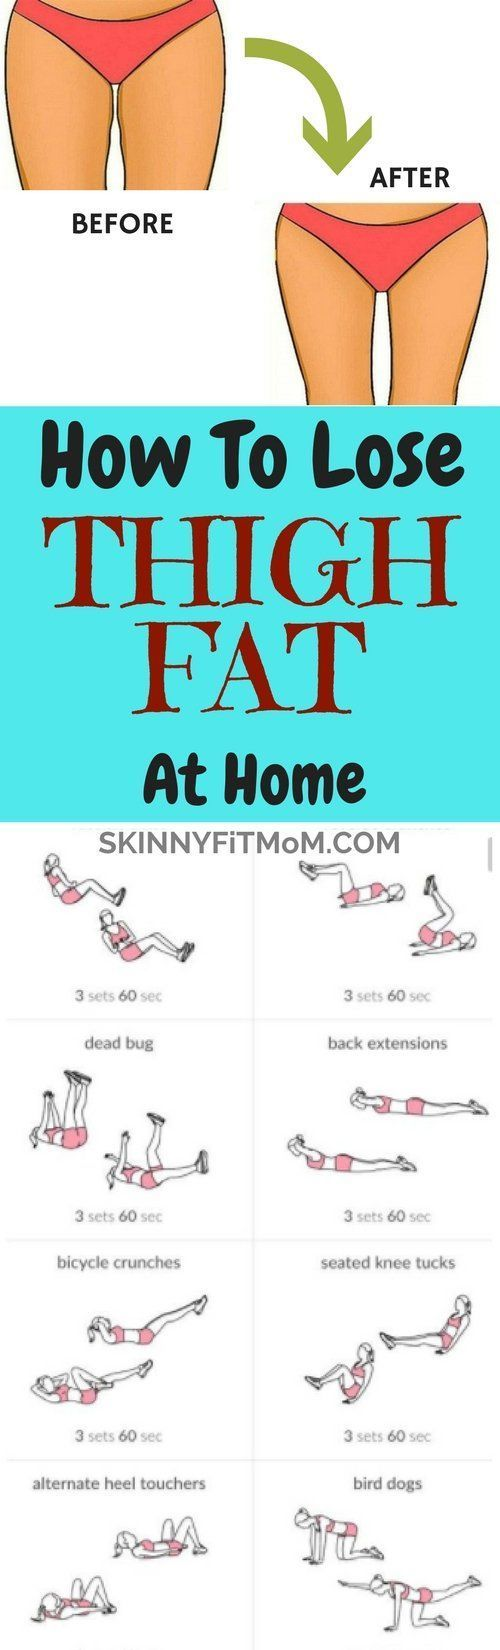 Fat Fast Shrinking Signal Diet-Recipes 10 Best Exercises To Lose Thigh Fat Fast At Home Do This One Unusual 10-Minute Trick Before Work To Melt Away 15+ Pounds of Belly Fat